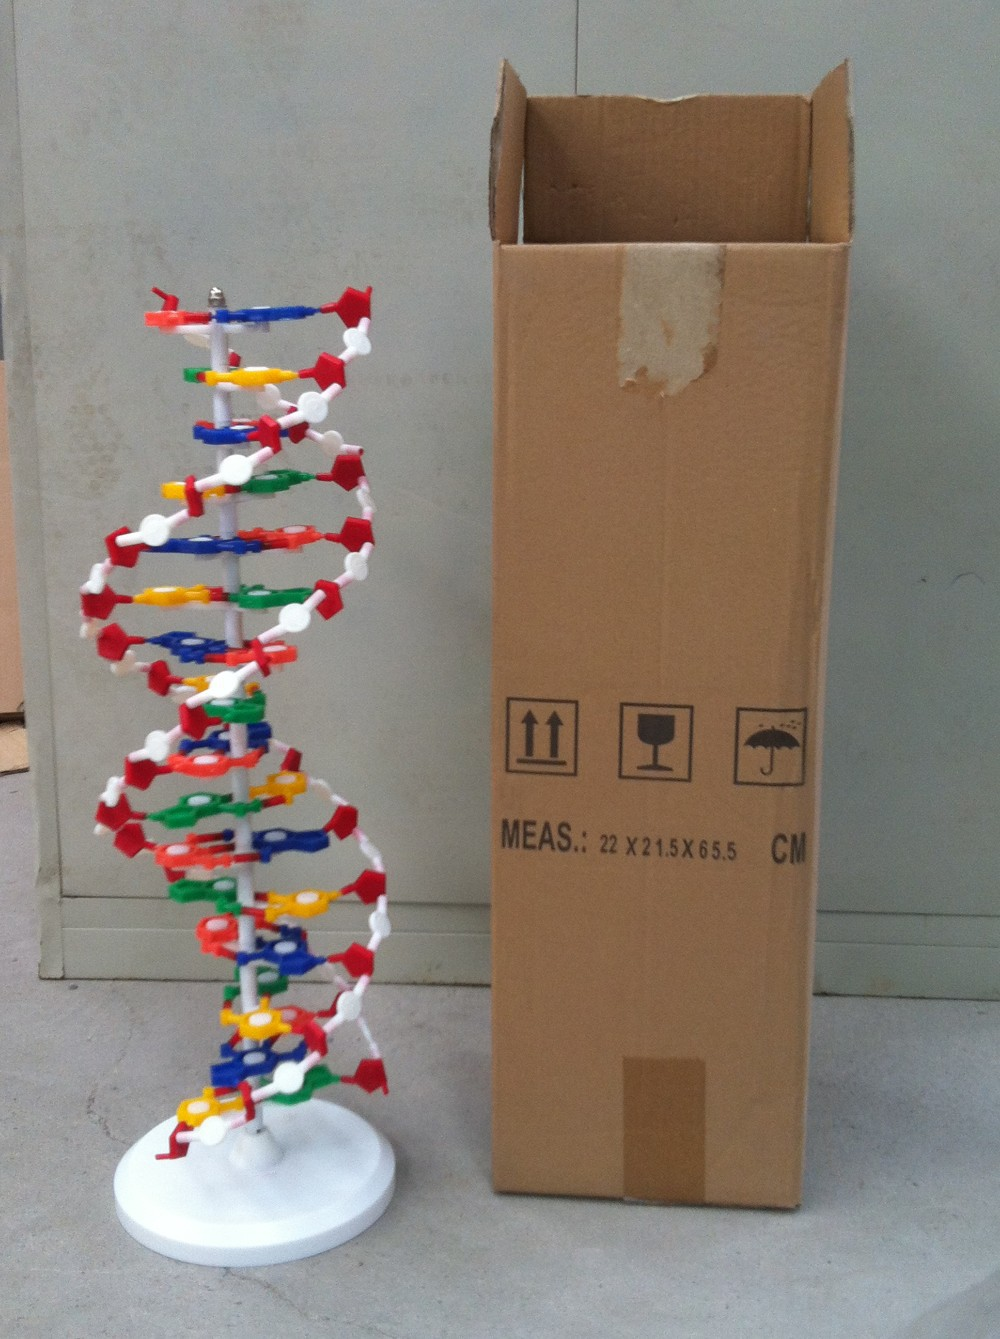 Dna molecule structure modelbiological model in medical science img0921 img0922 img0923 img0924 img0925 ccuart Choice Image